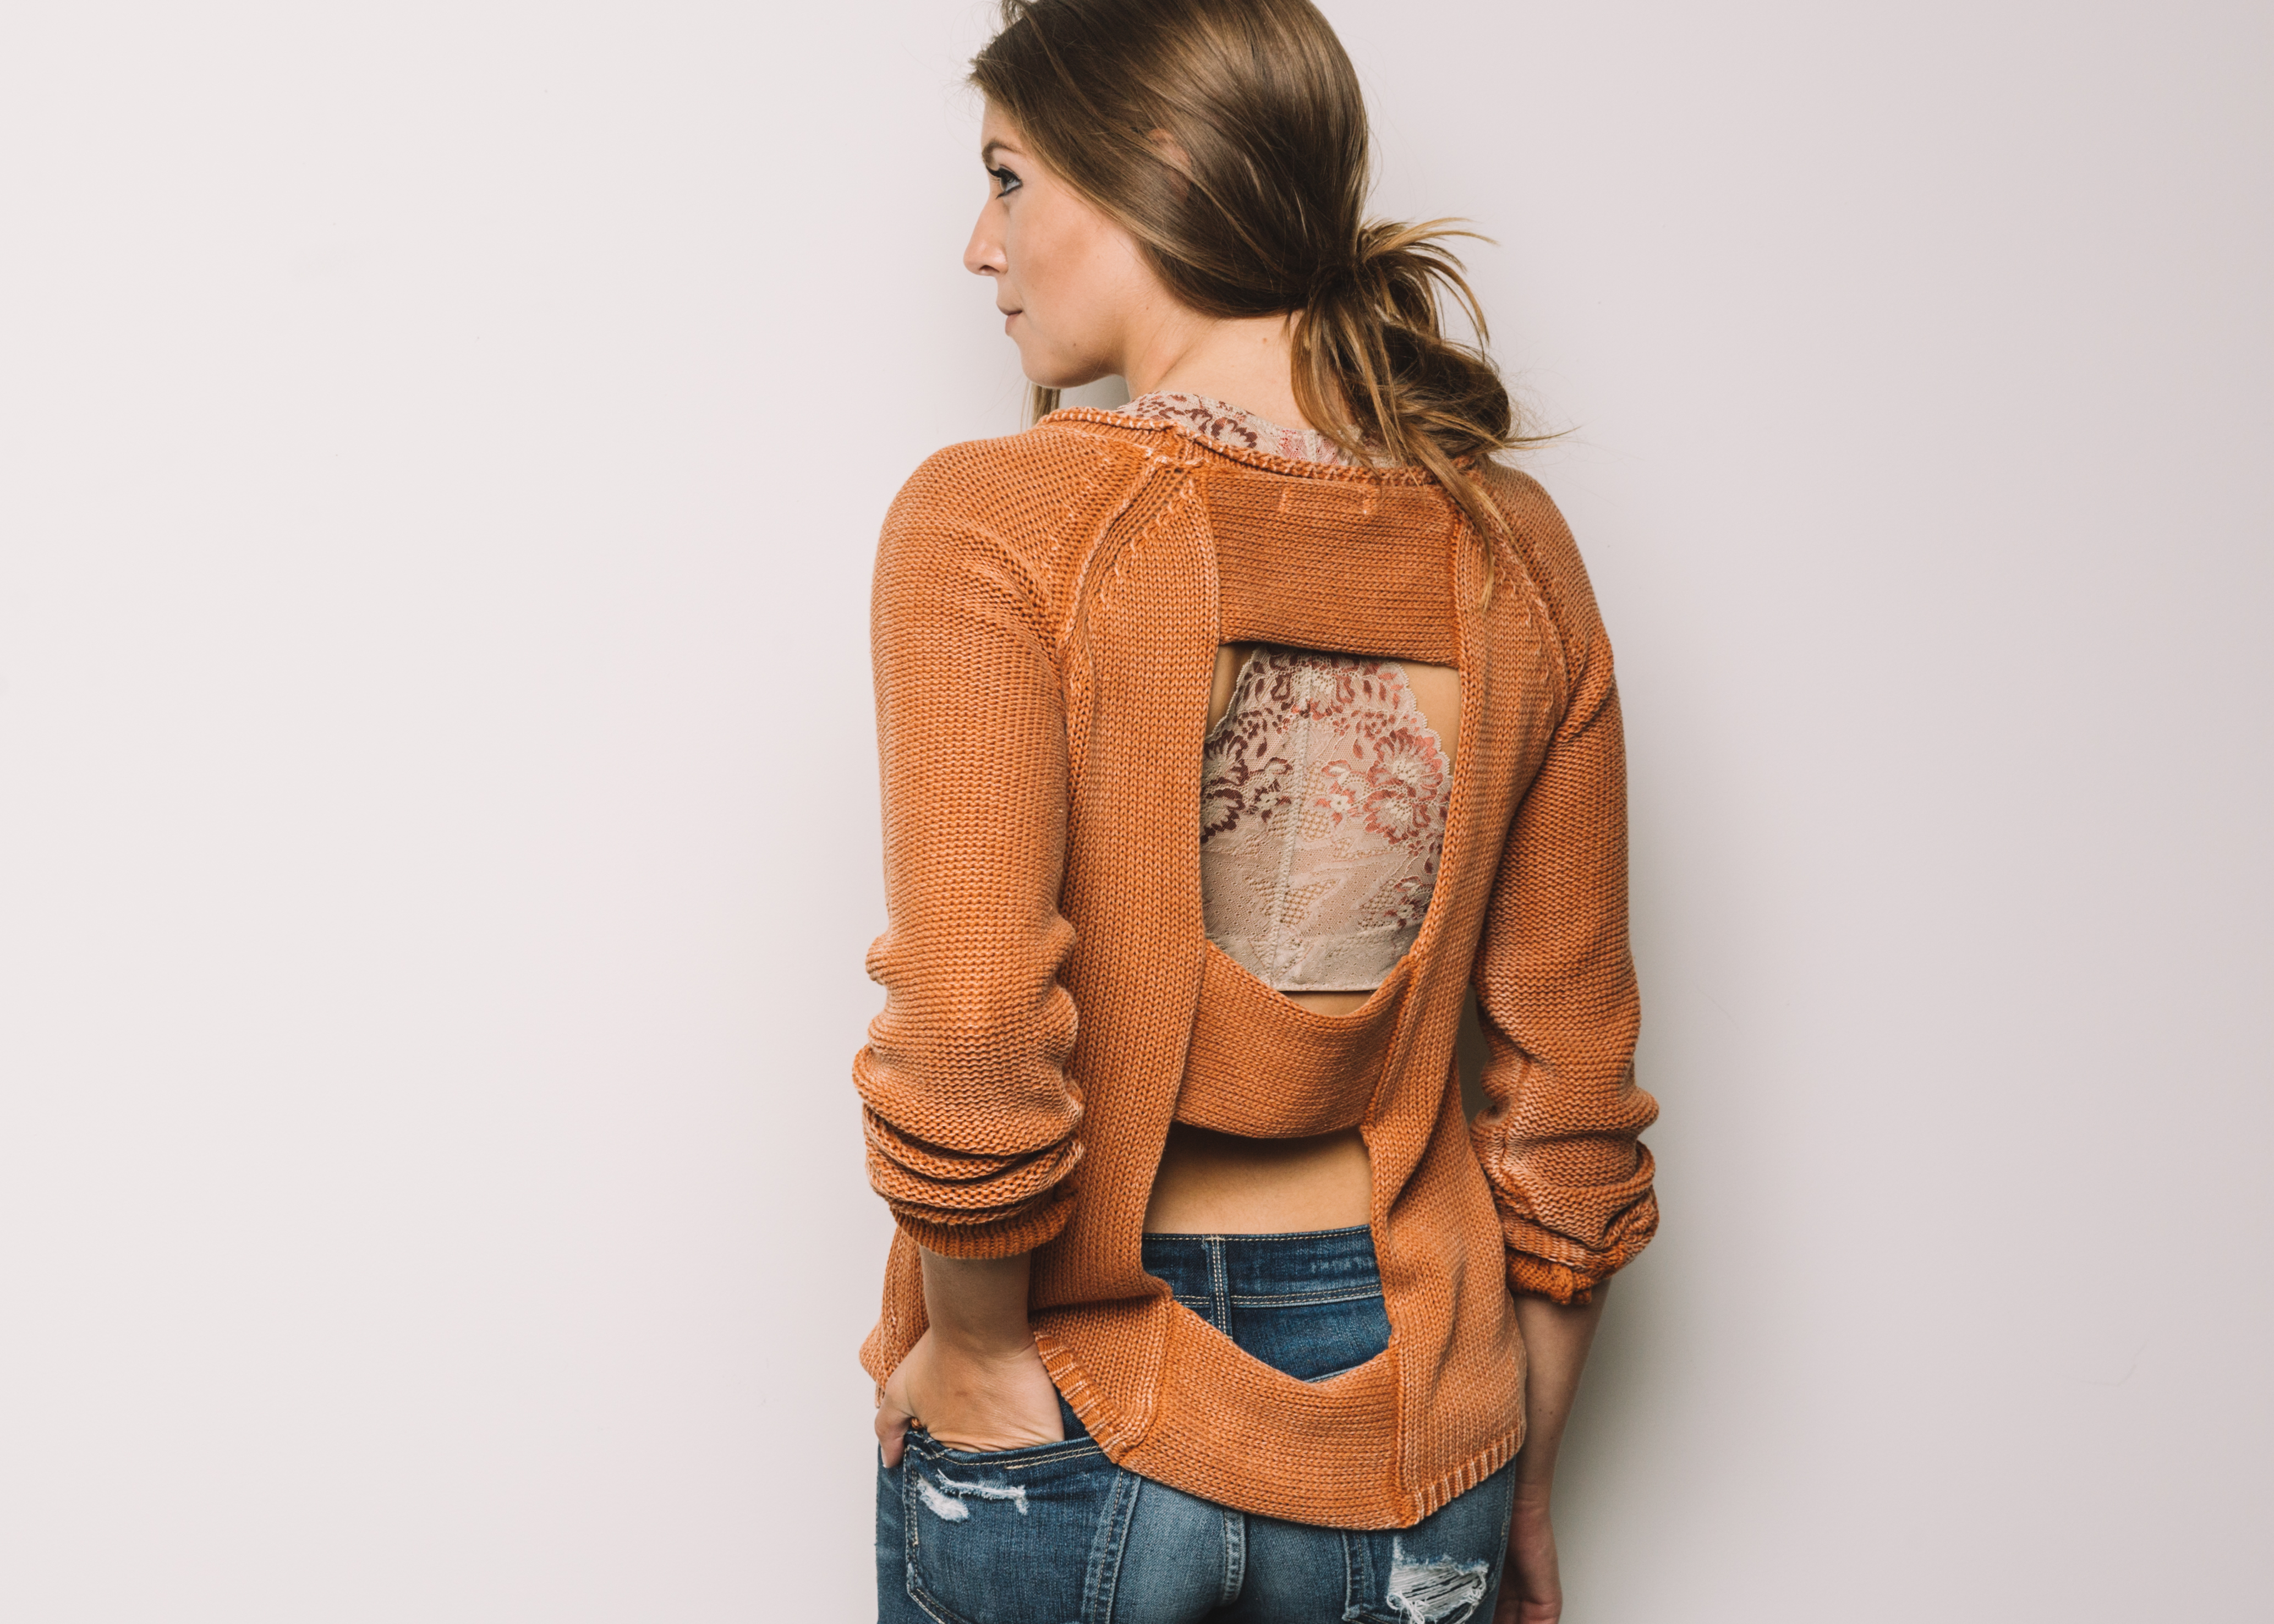 #BareYourBralette this October to raise awareness for Breast Cancer Prevention and Early Detection | Outfit: washed orange Gilded Intent knit sweater, paired with a Daytrip lace racer back bralette, and Gilded Intent distressed ankle skinny denim.